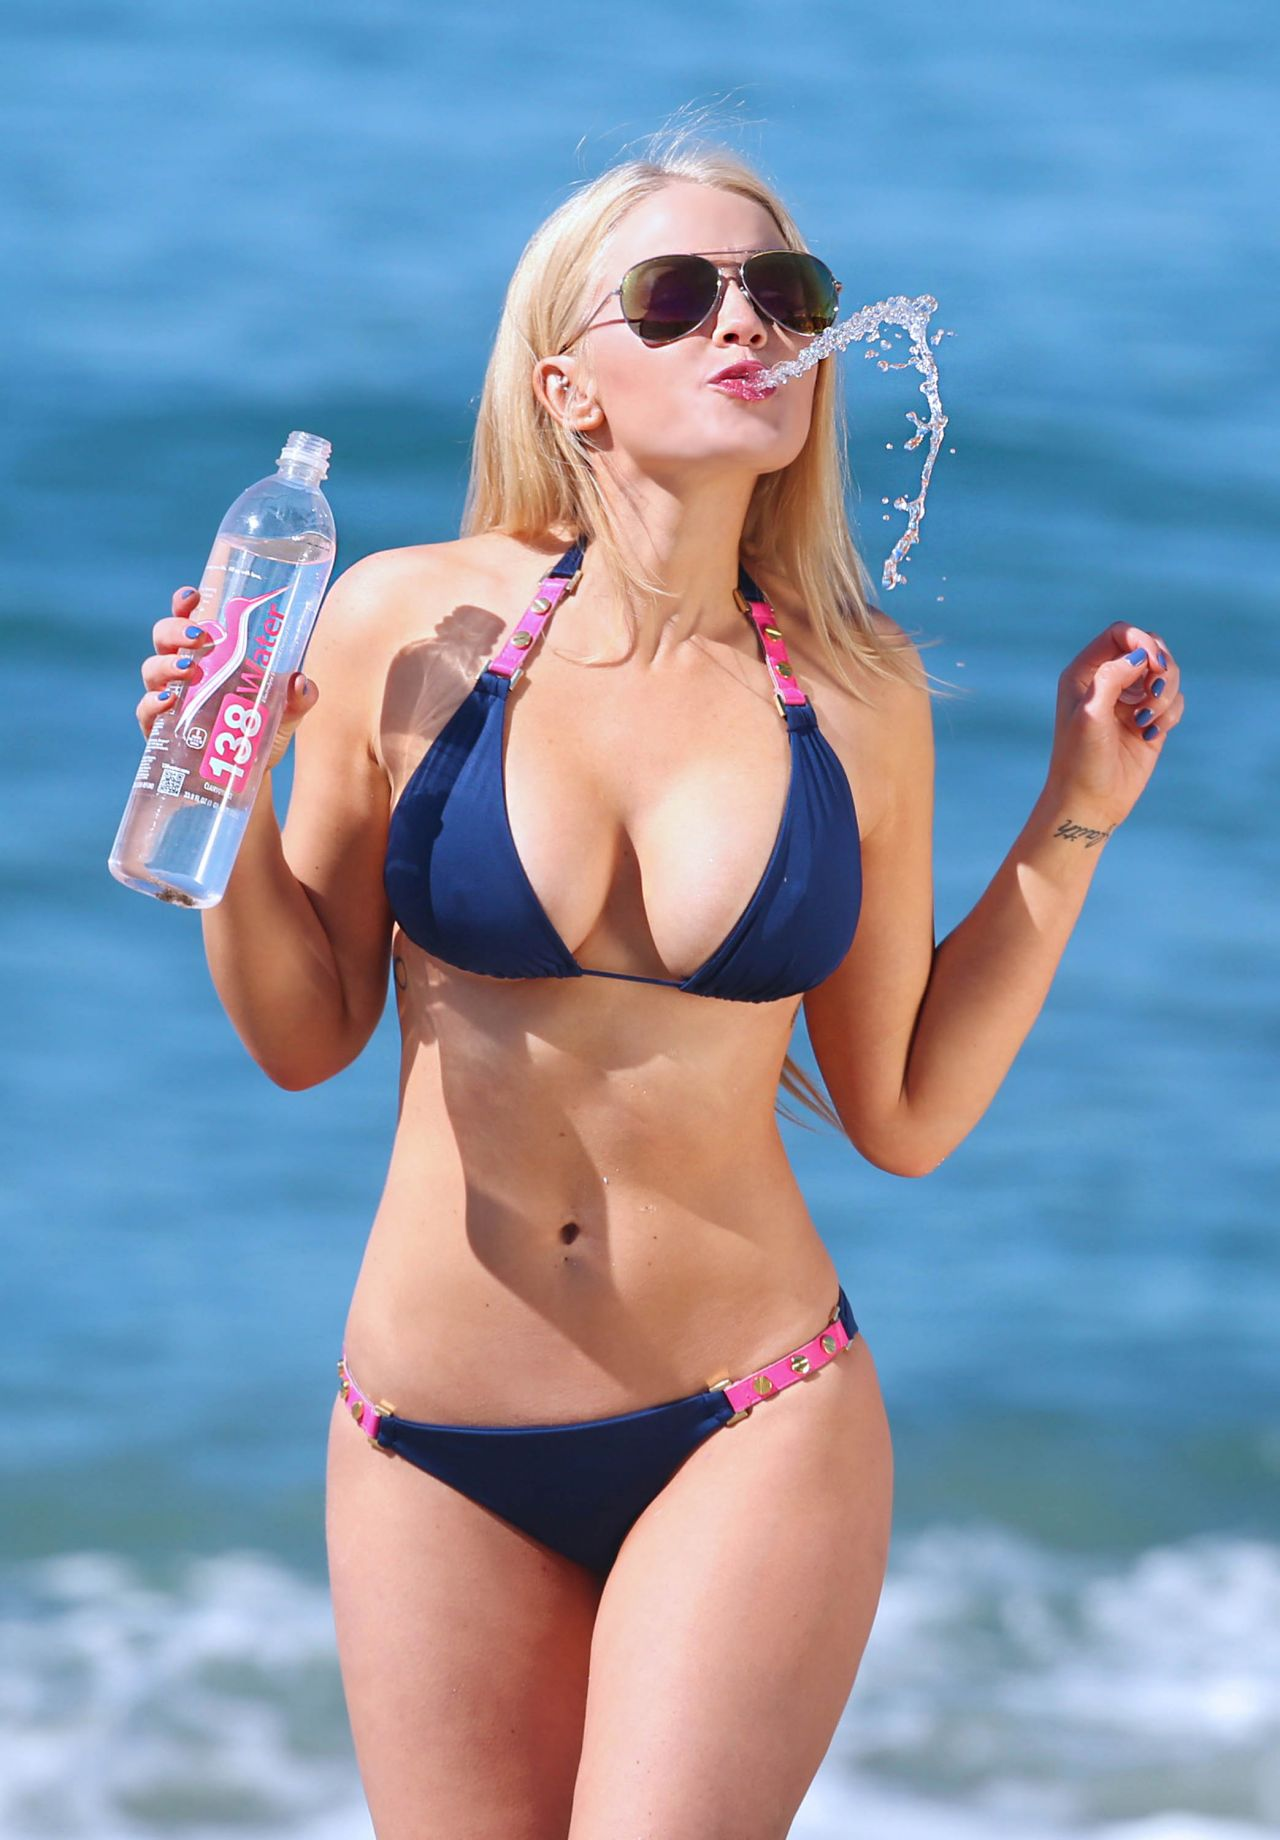 Anna Sophia Berglund Bikini Photoshoot For 138 Water In